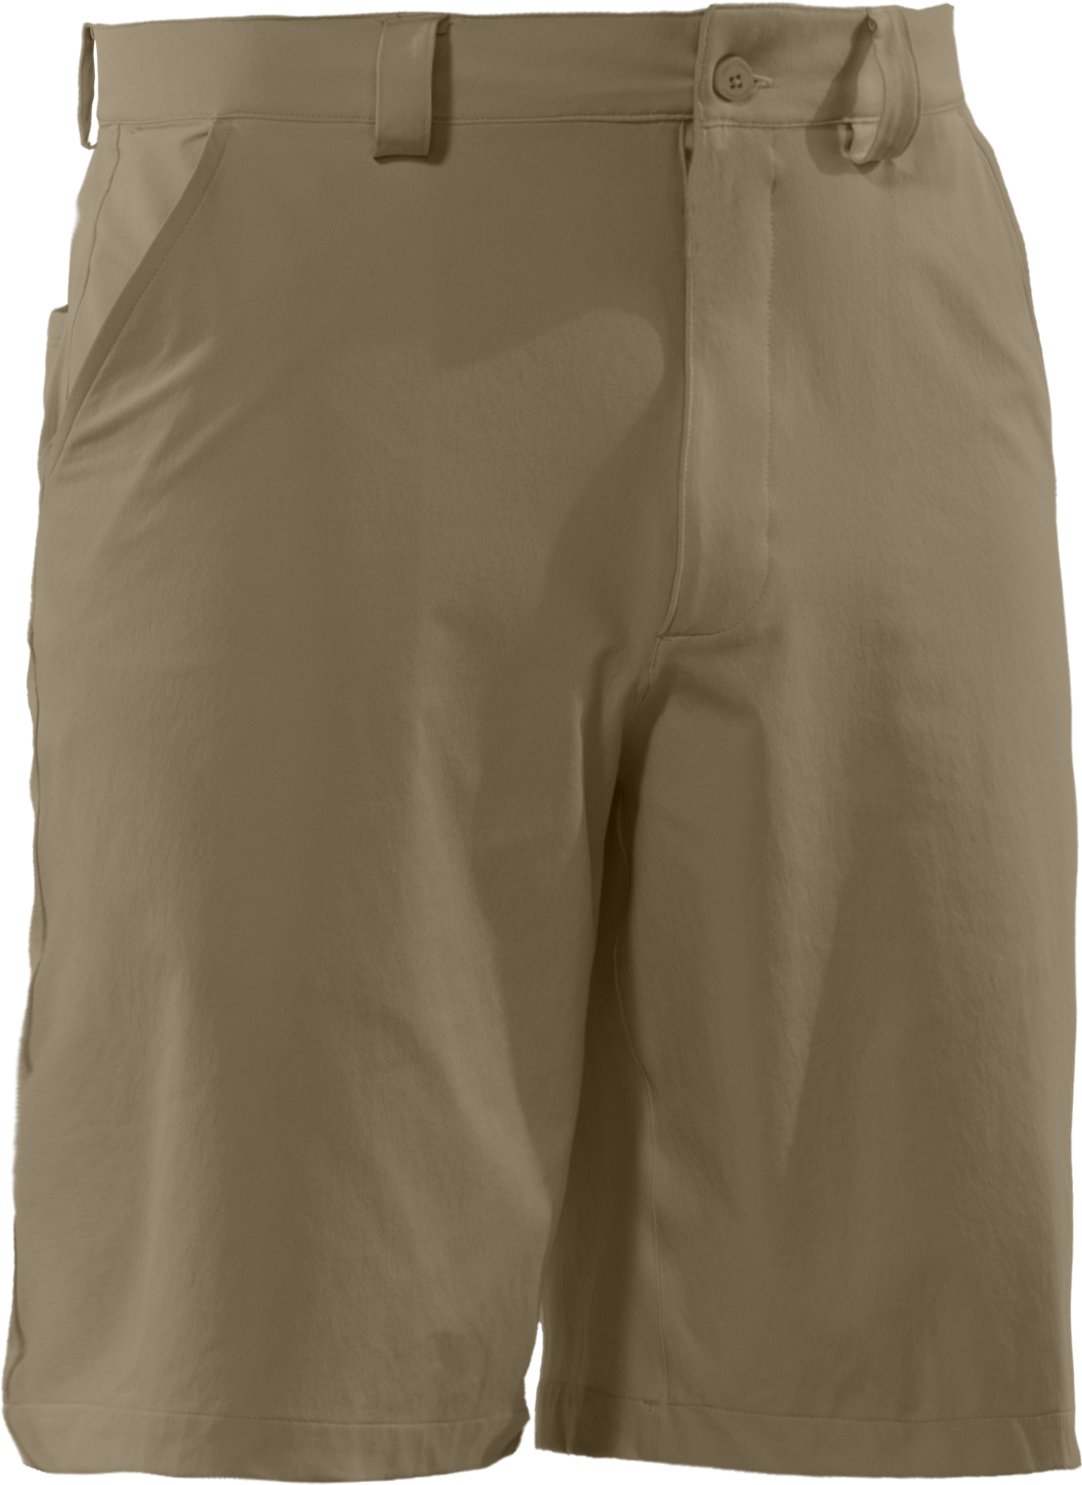 Men's Bent Grass Shorts, Canvas